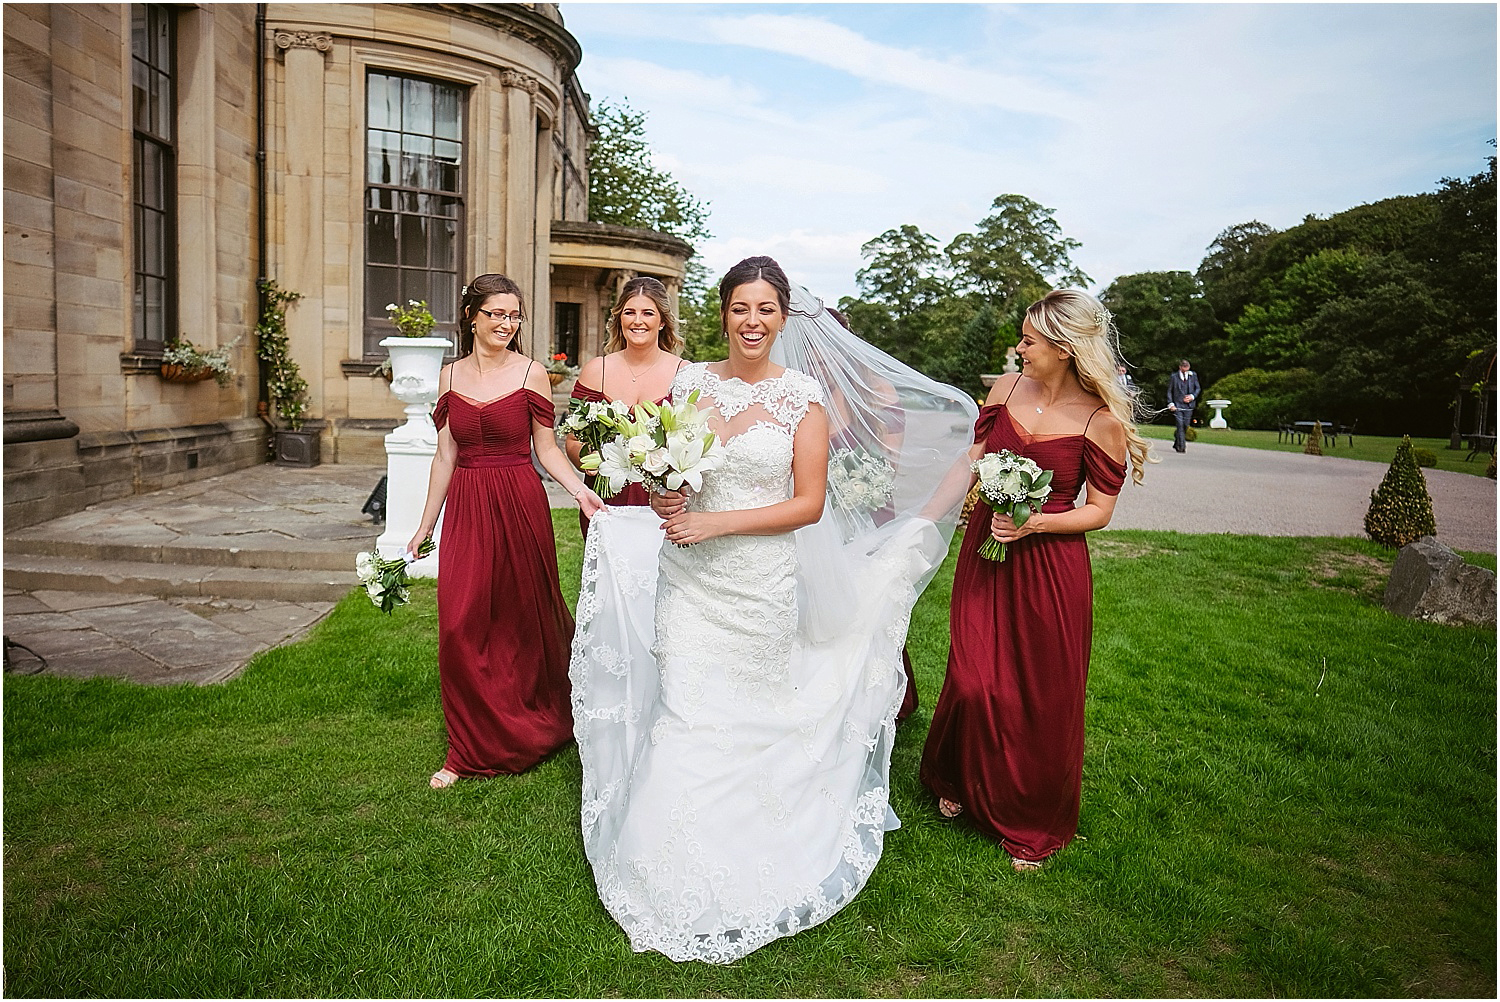 Wedding at Beamish Hall - wedding photography by www.2tonephotography.co.uk 174.jpg